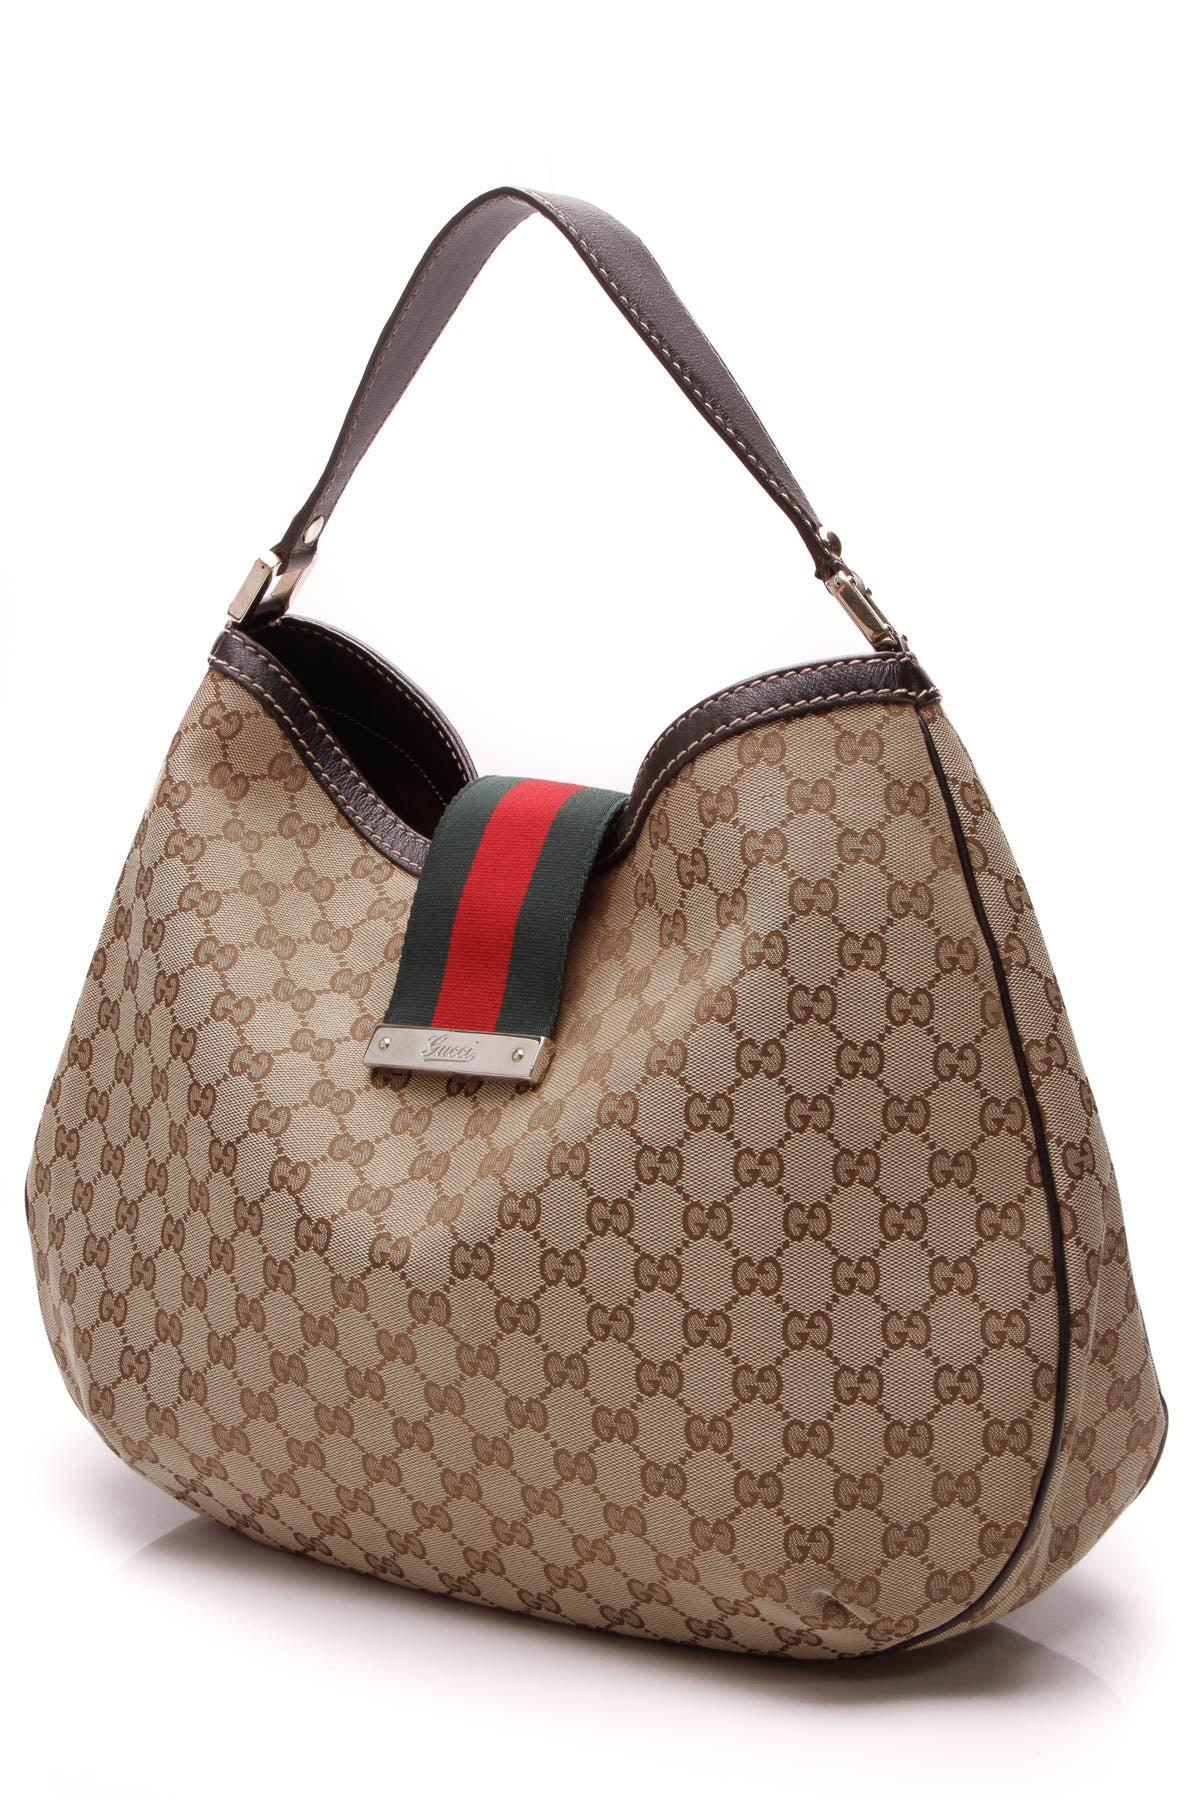 034db95ed7a Gucci New Ladies Web Large Hobo Bag - Signature Canvas – Couture USA